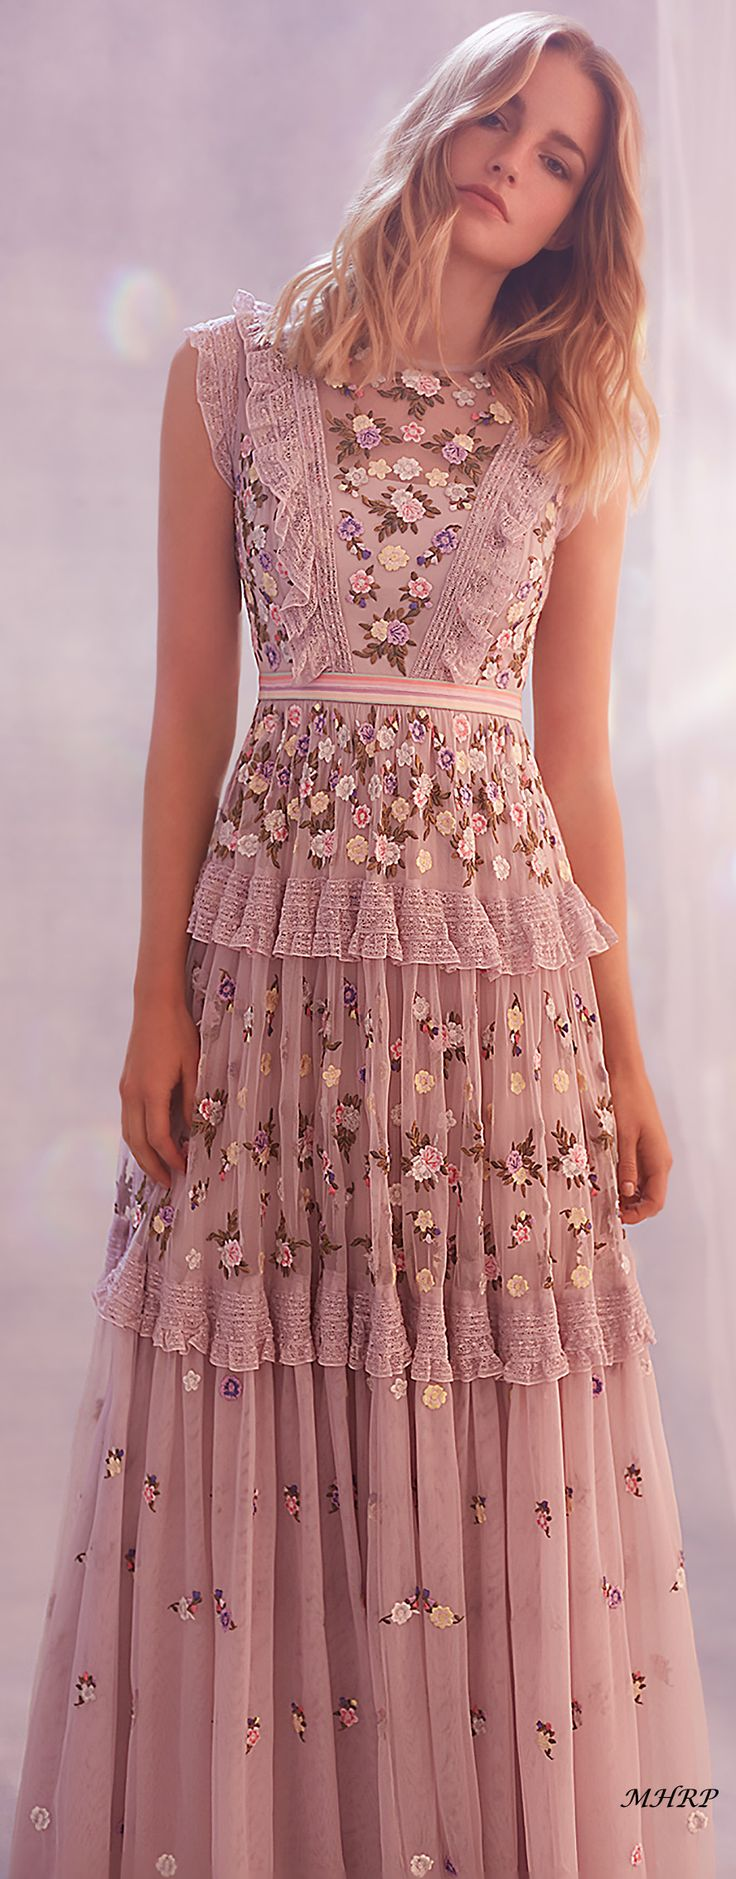 7200 best Awesome dresses images on Pinterest | Cute dresses ...